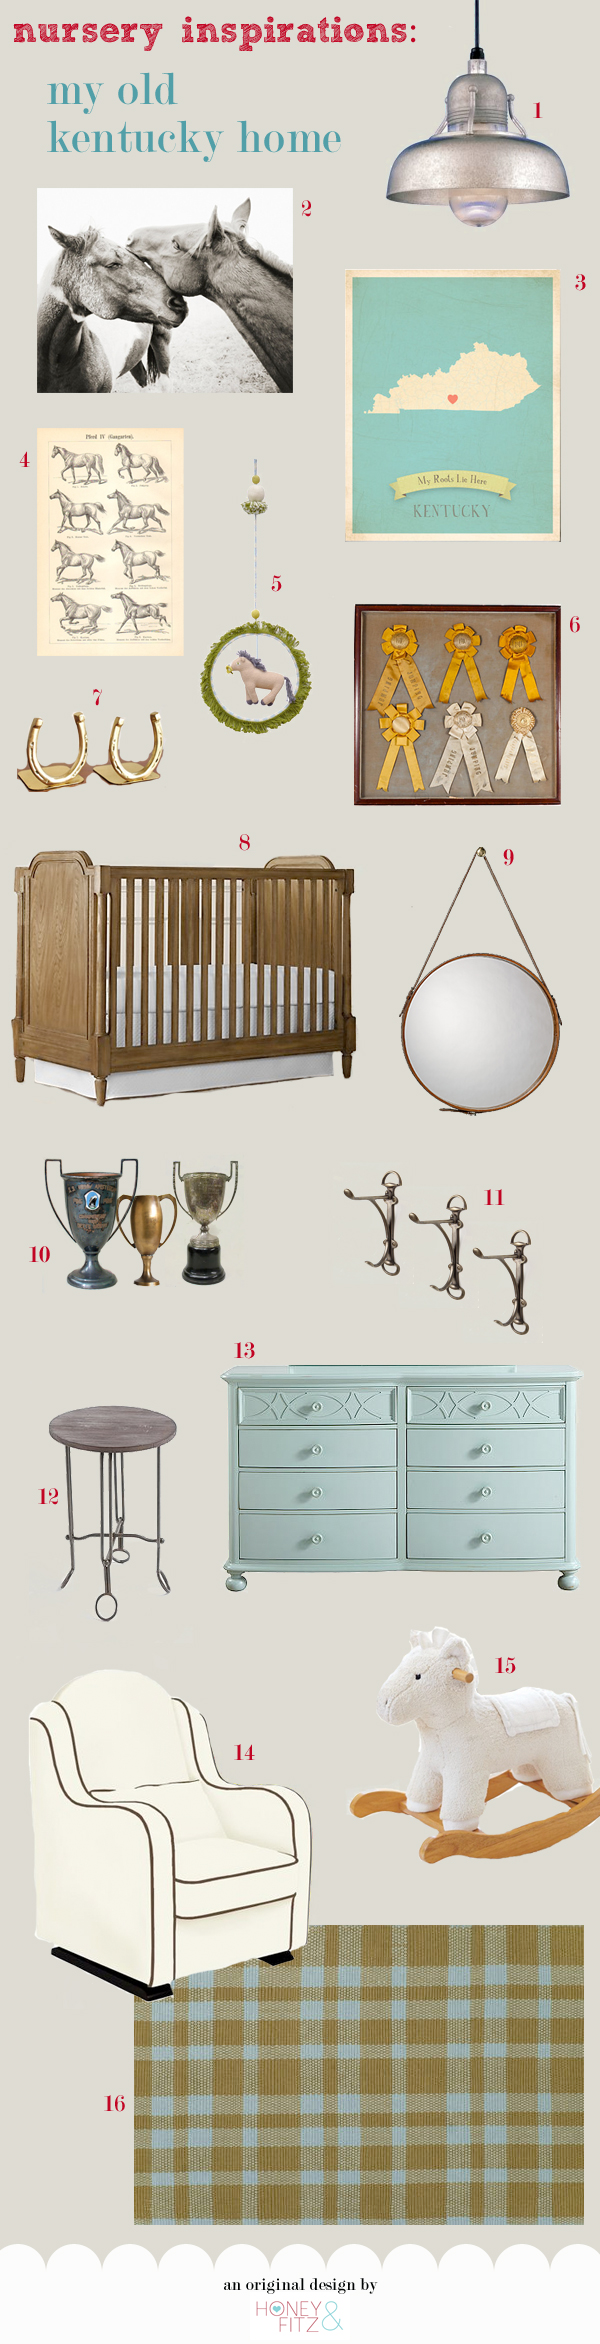 nursery-inspirations-my-old-kentucky-home